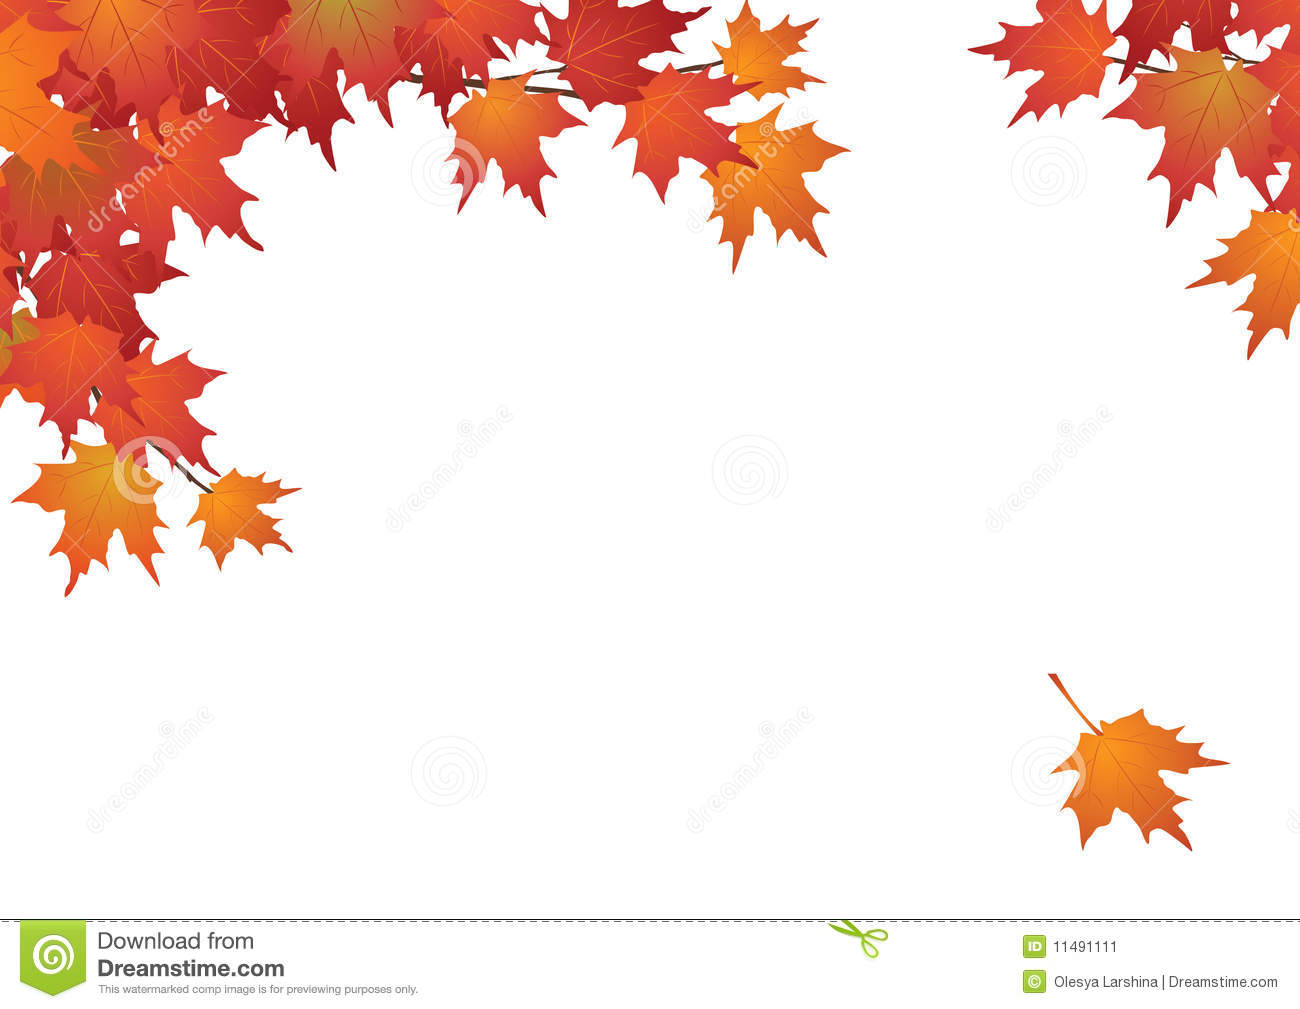 Fall Leaves Wallpaper Powerpoint Background Autumn Leaves Background Frame Stock Vector Illustration